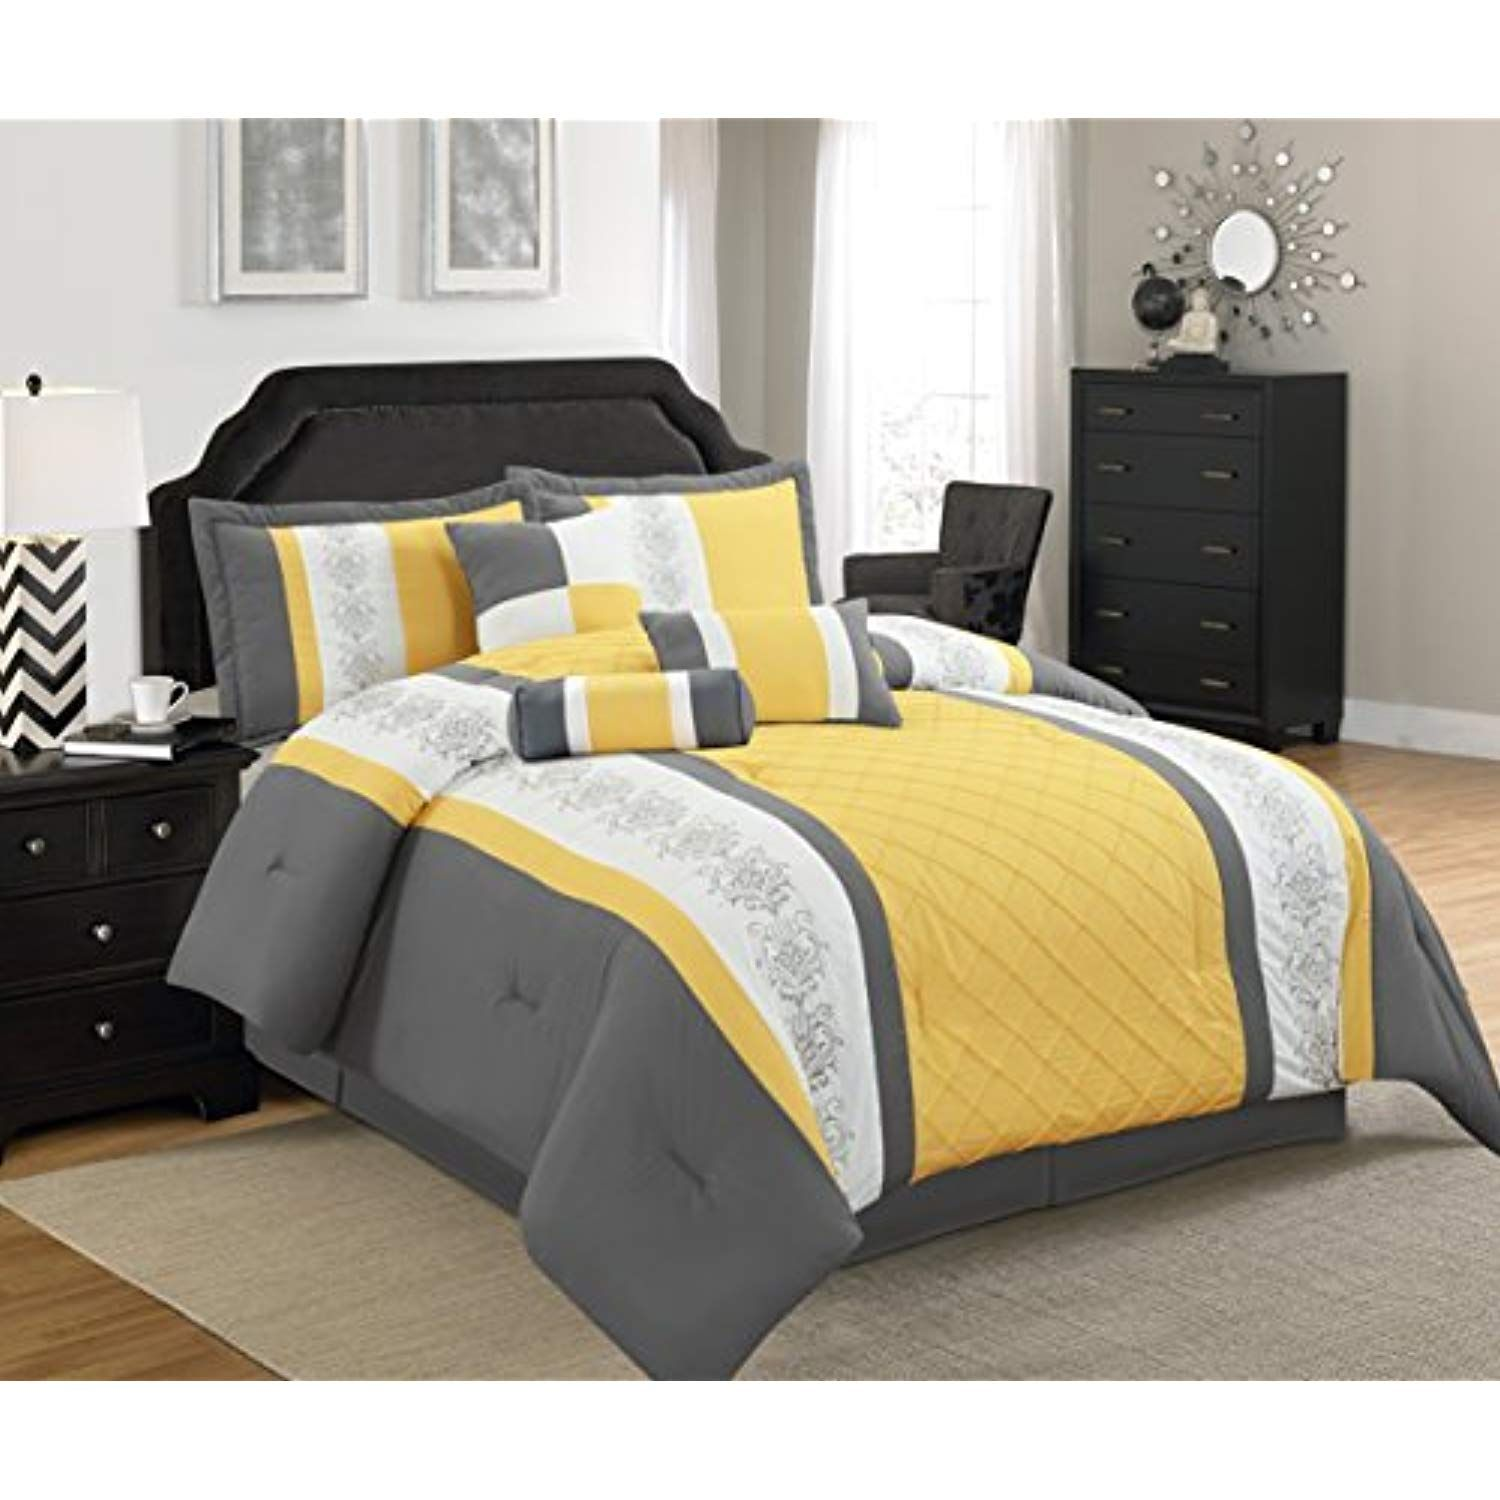 Legacy Decor 7 Pc Grey Yellow And White Striped Comforter Set With Embroidered Design Cal King Size Want Addit Modern Bed Set Bedding Sets Comforter Sets